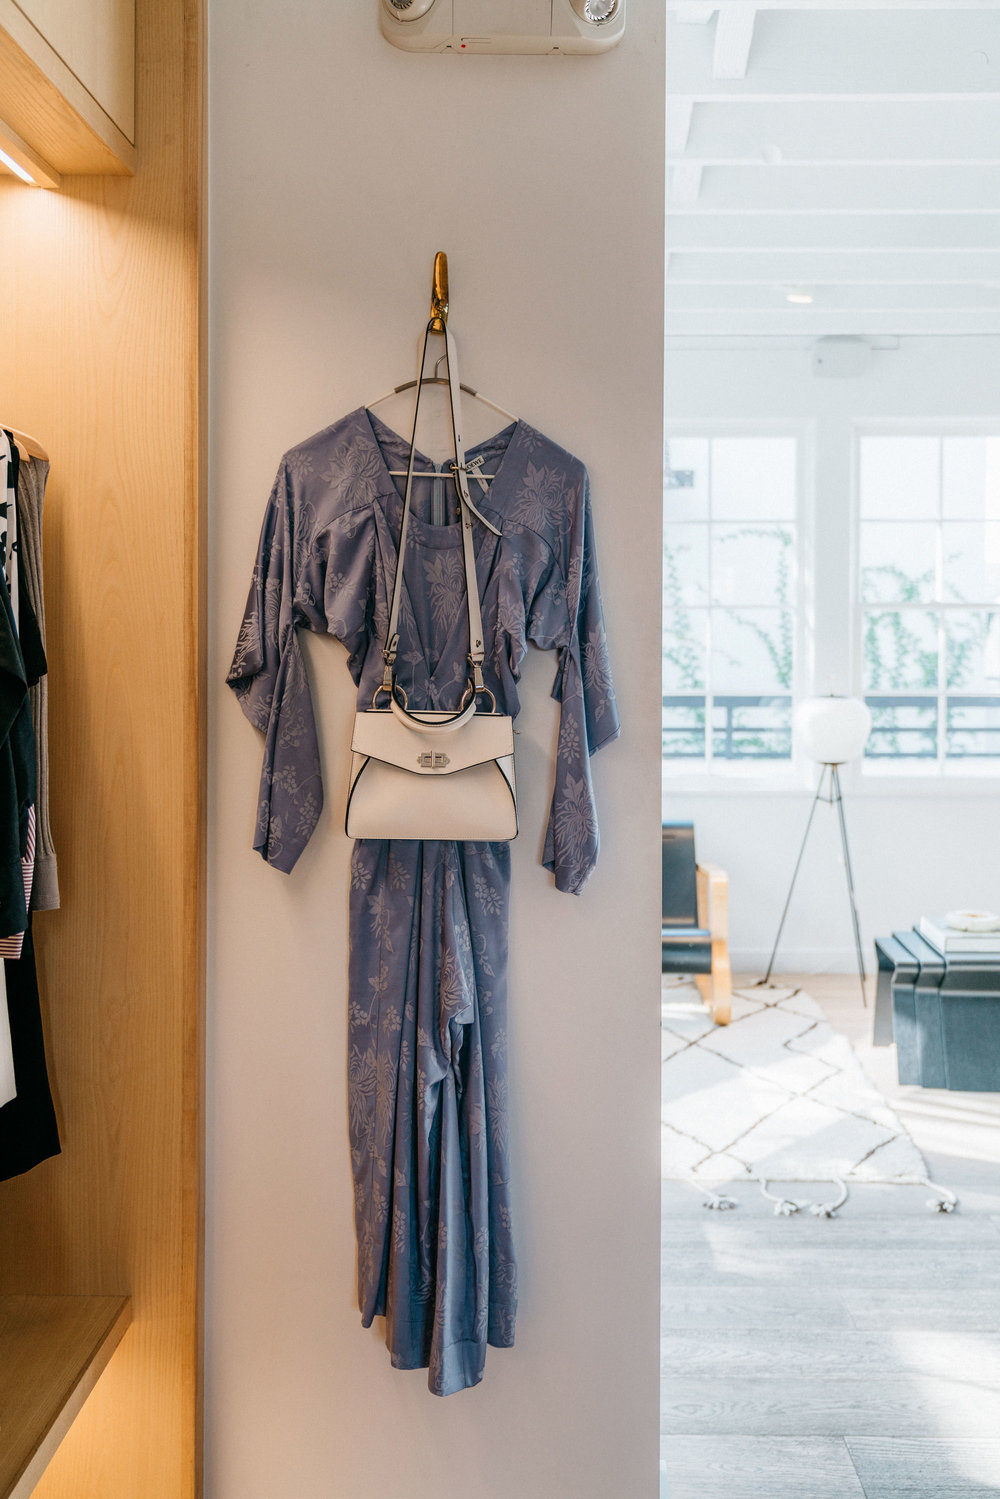 Loewe Dress, Proenza Schouler Bag